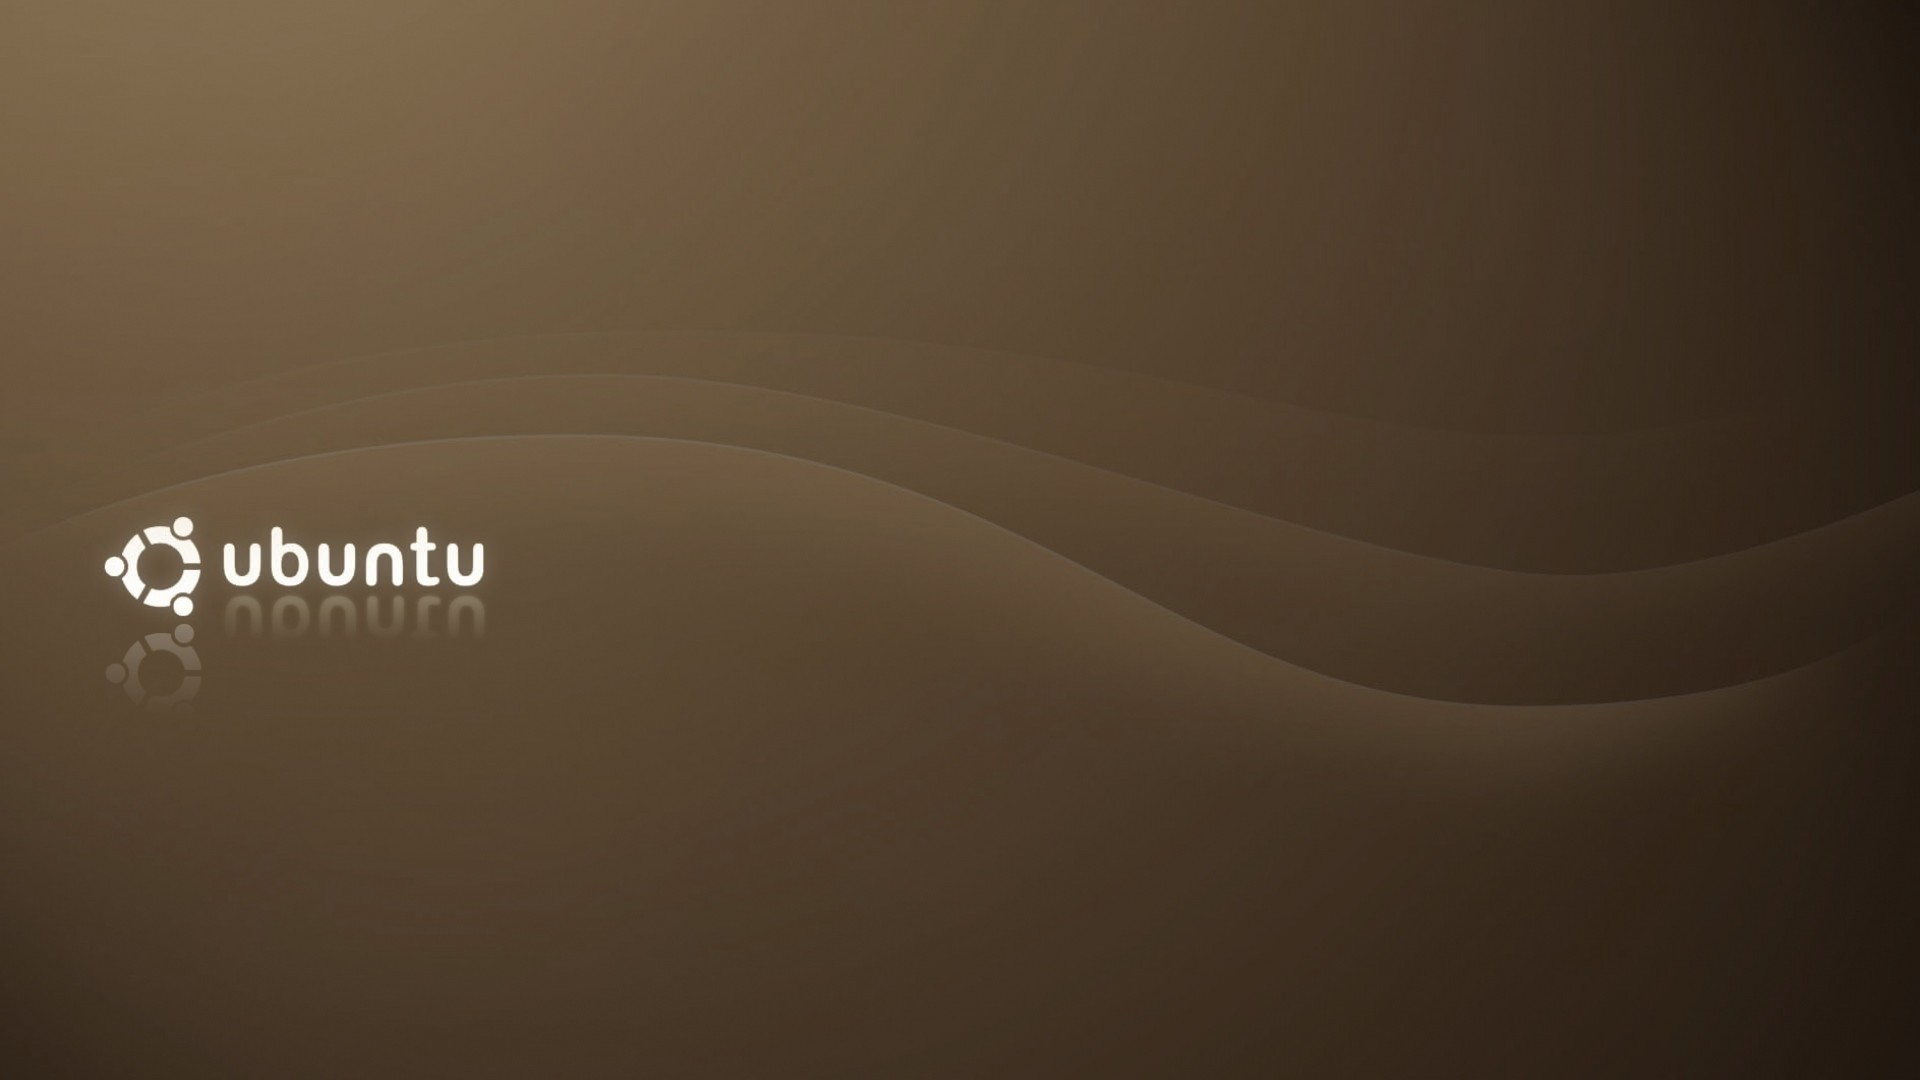 Preview wallpaper ubuntu, operating system, technology, background 1920×1080